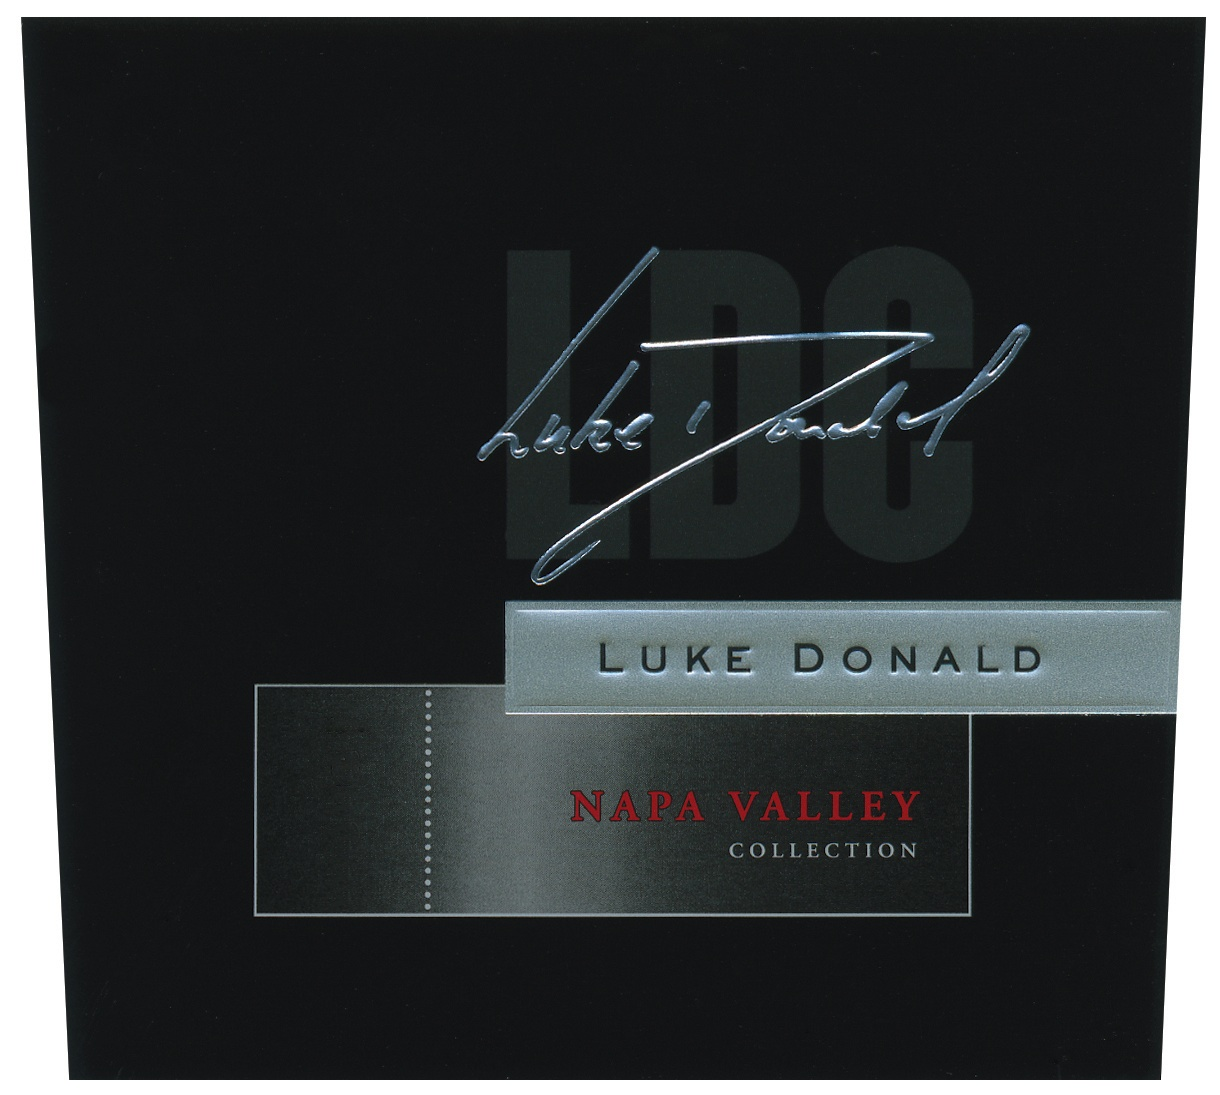 Luke Donald Collection Claret 2010 Bordeaux Red Blends Wine Red Blends Wine